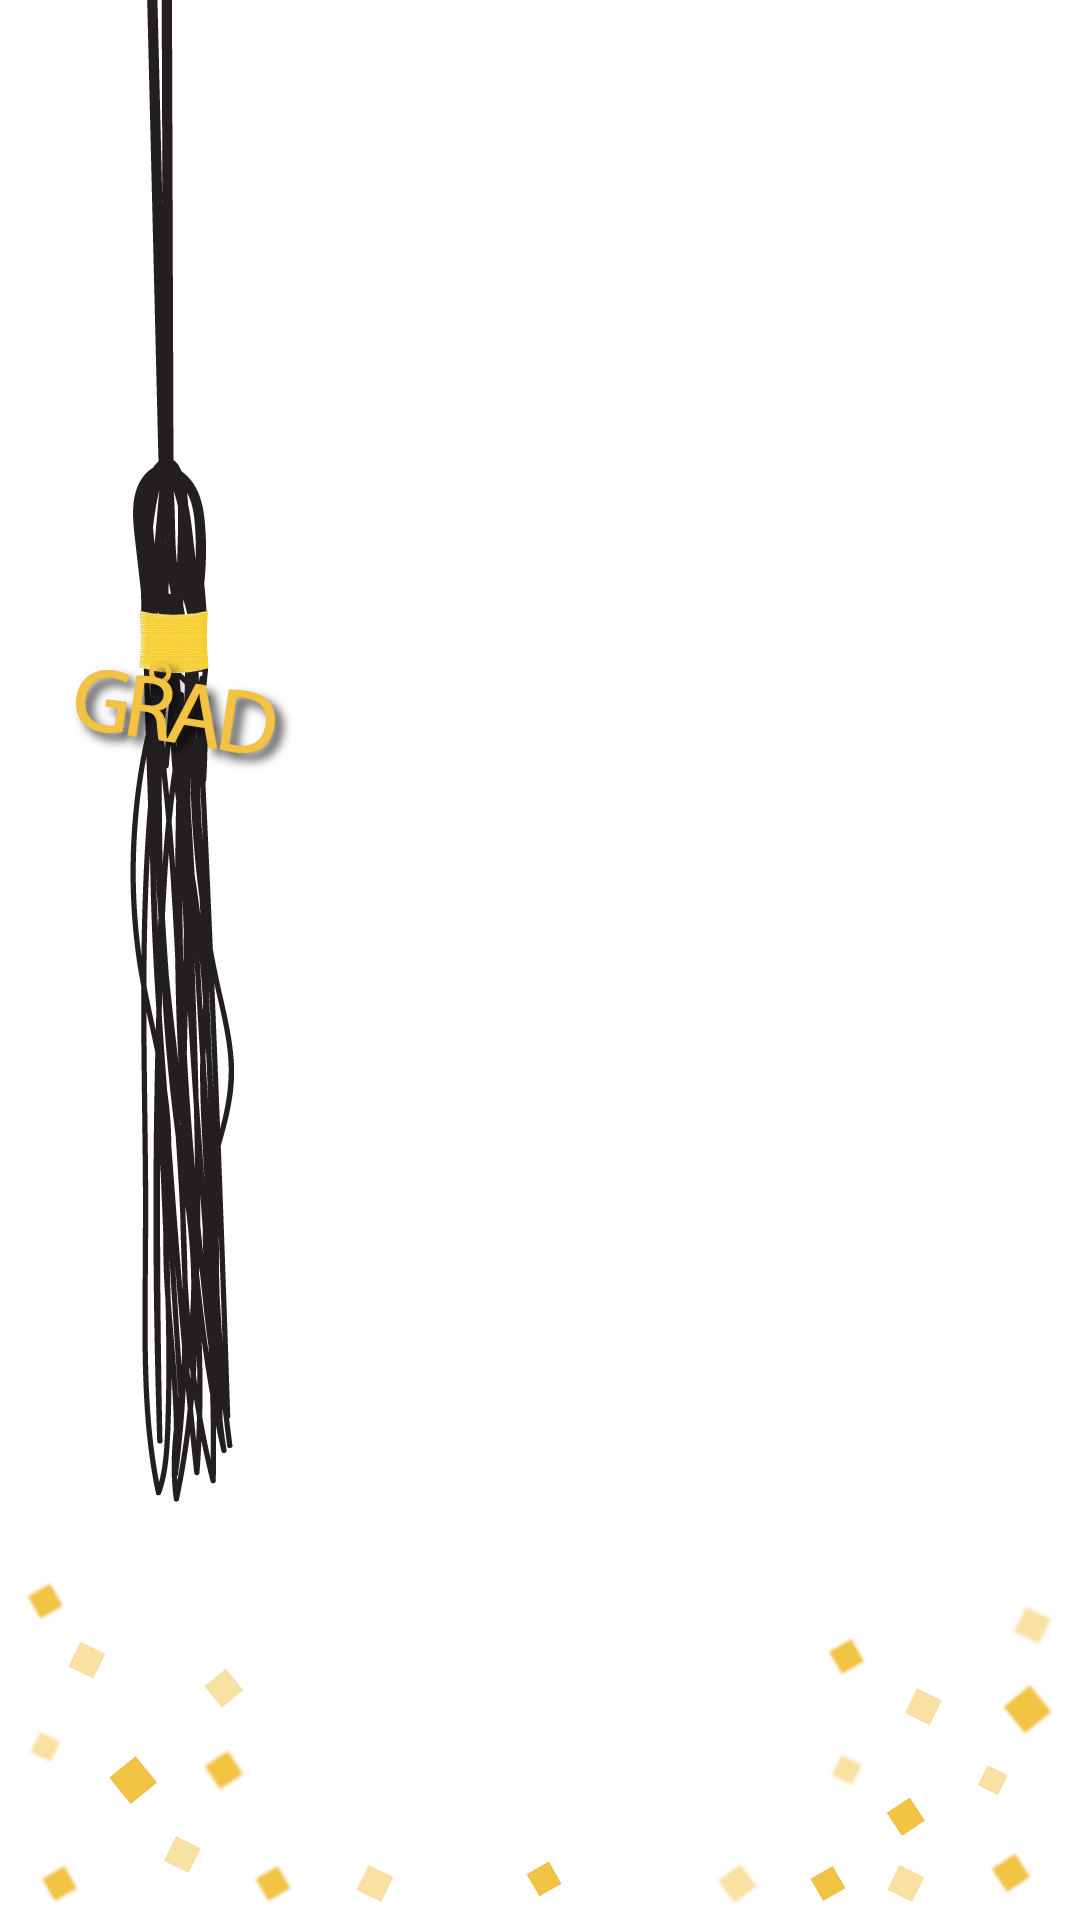 graduate drawing man